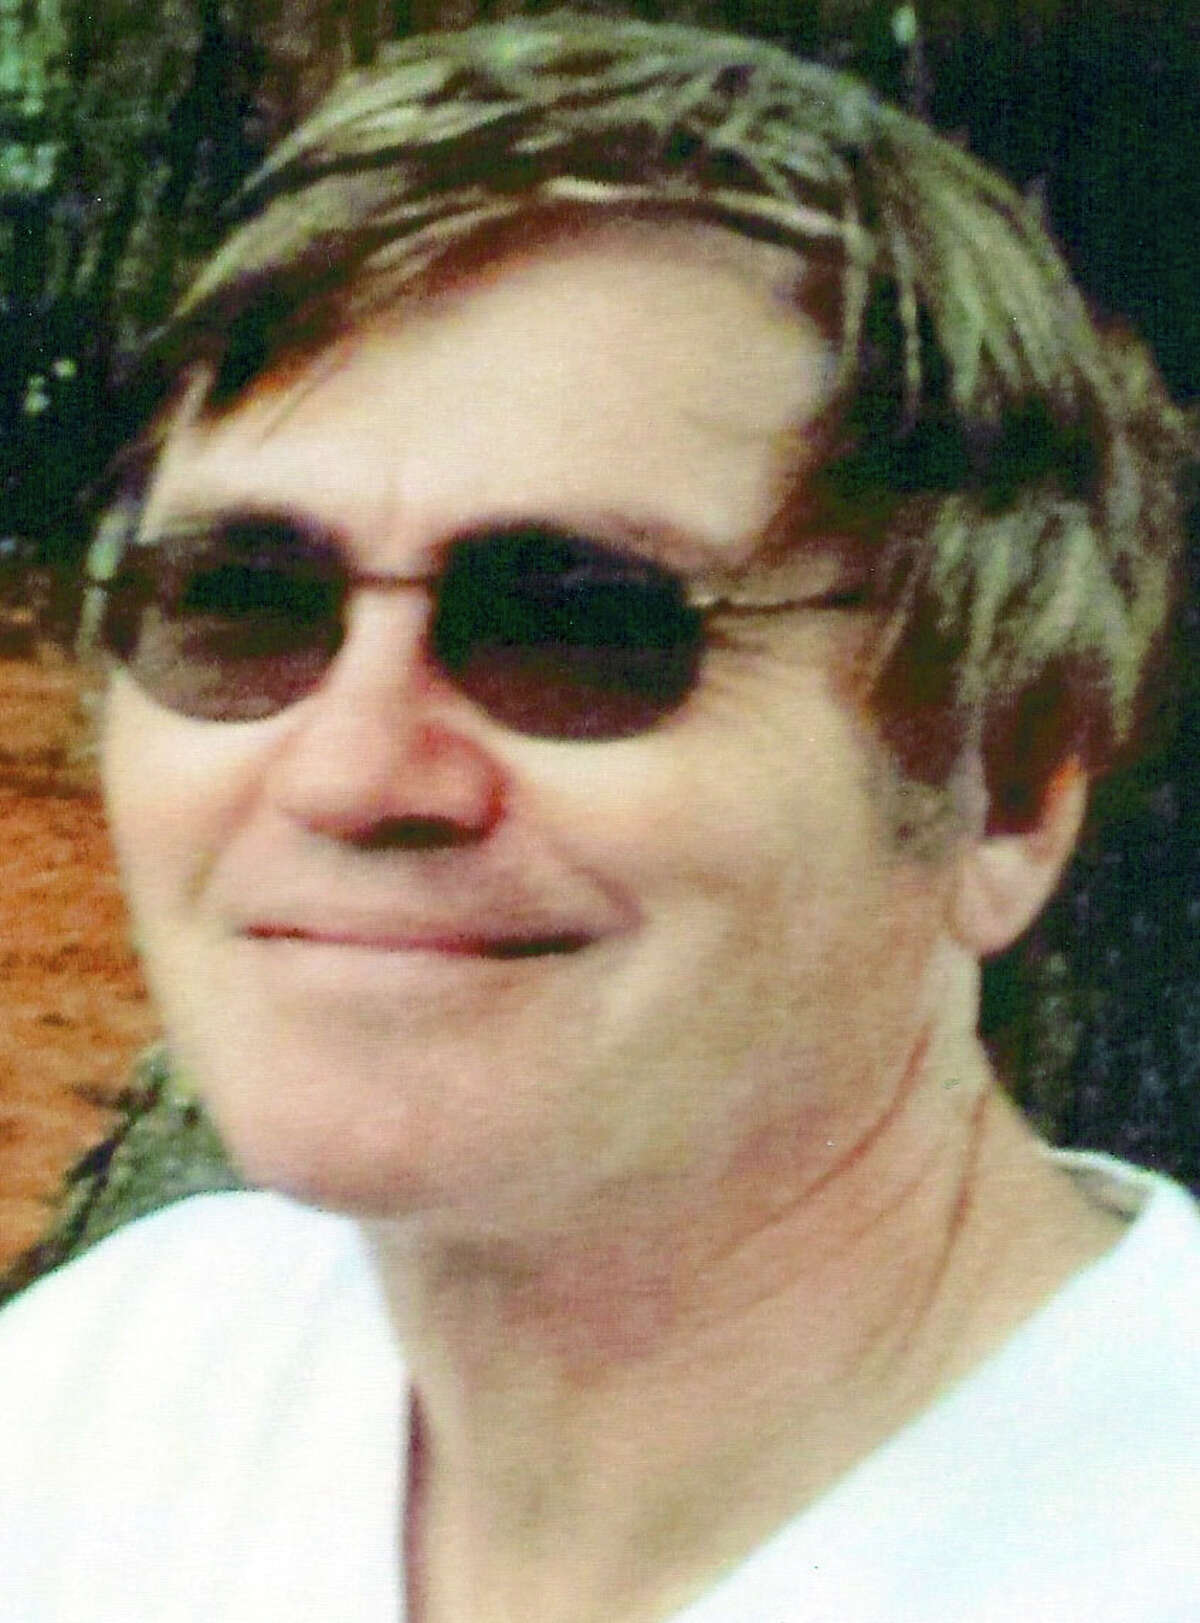 Dwight Hipp, 58, of New Milford, died while biking on Aug. 22, 2014.